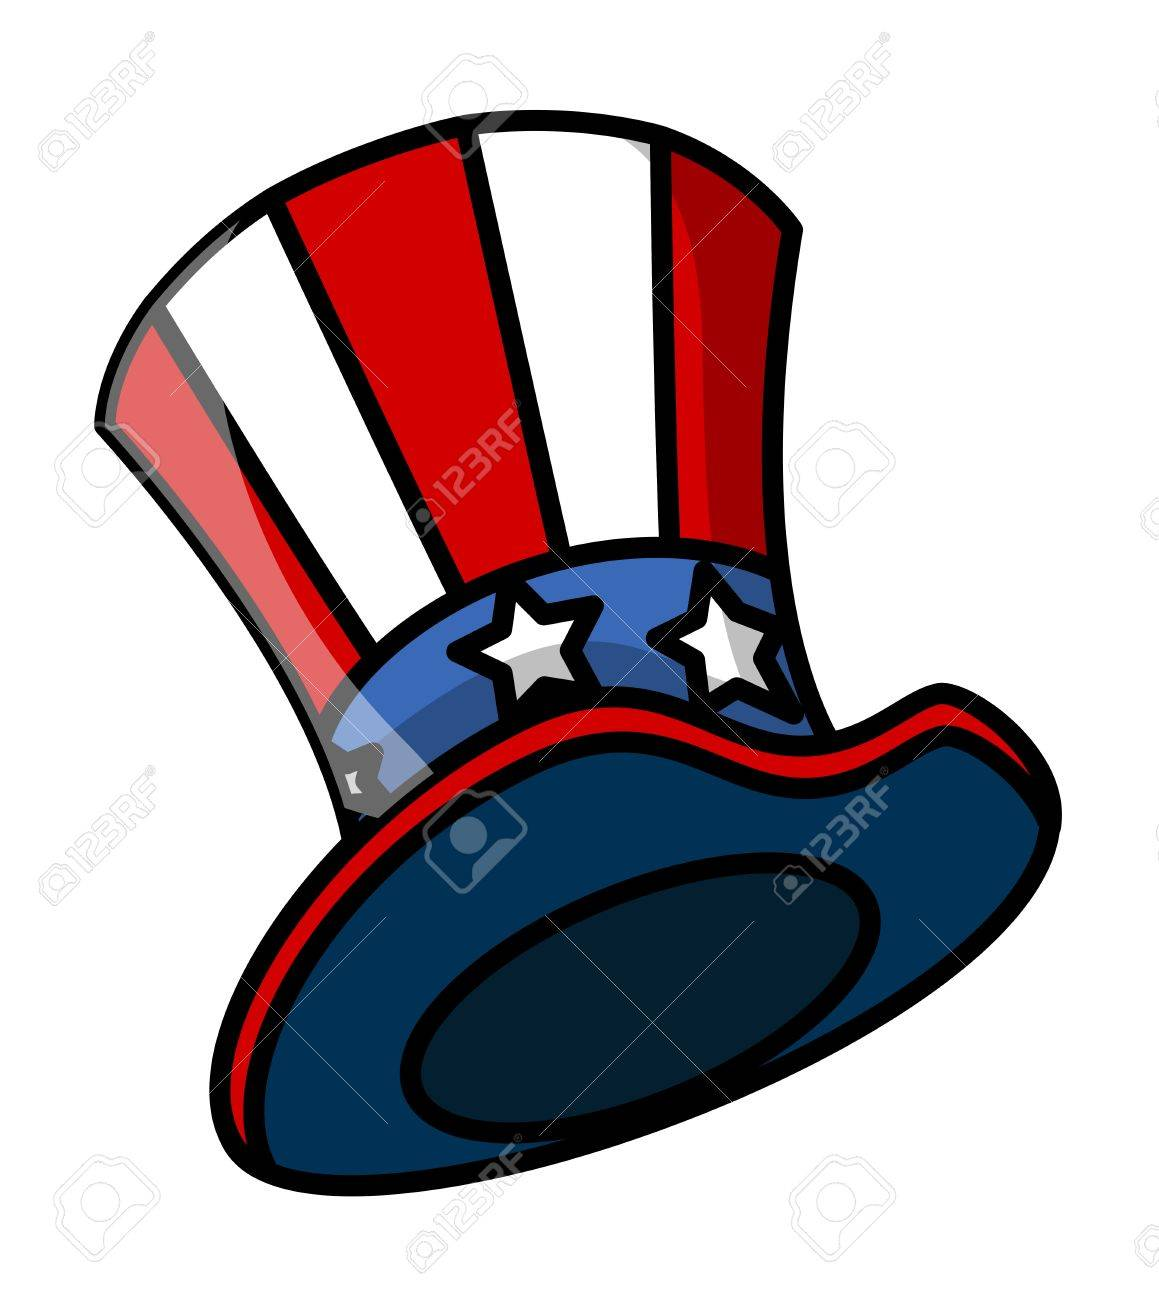 Uncle Sam Hat Vector Royalty Free Cliparts, Vectors, And Stock ...